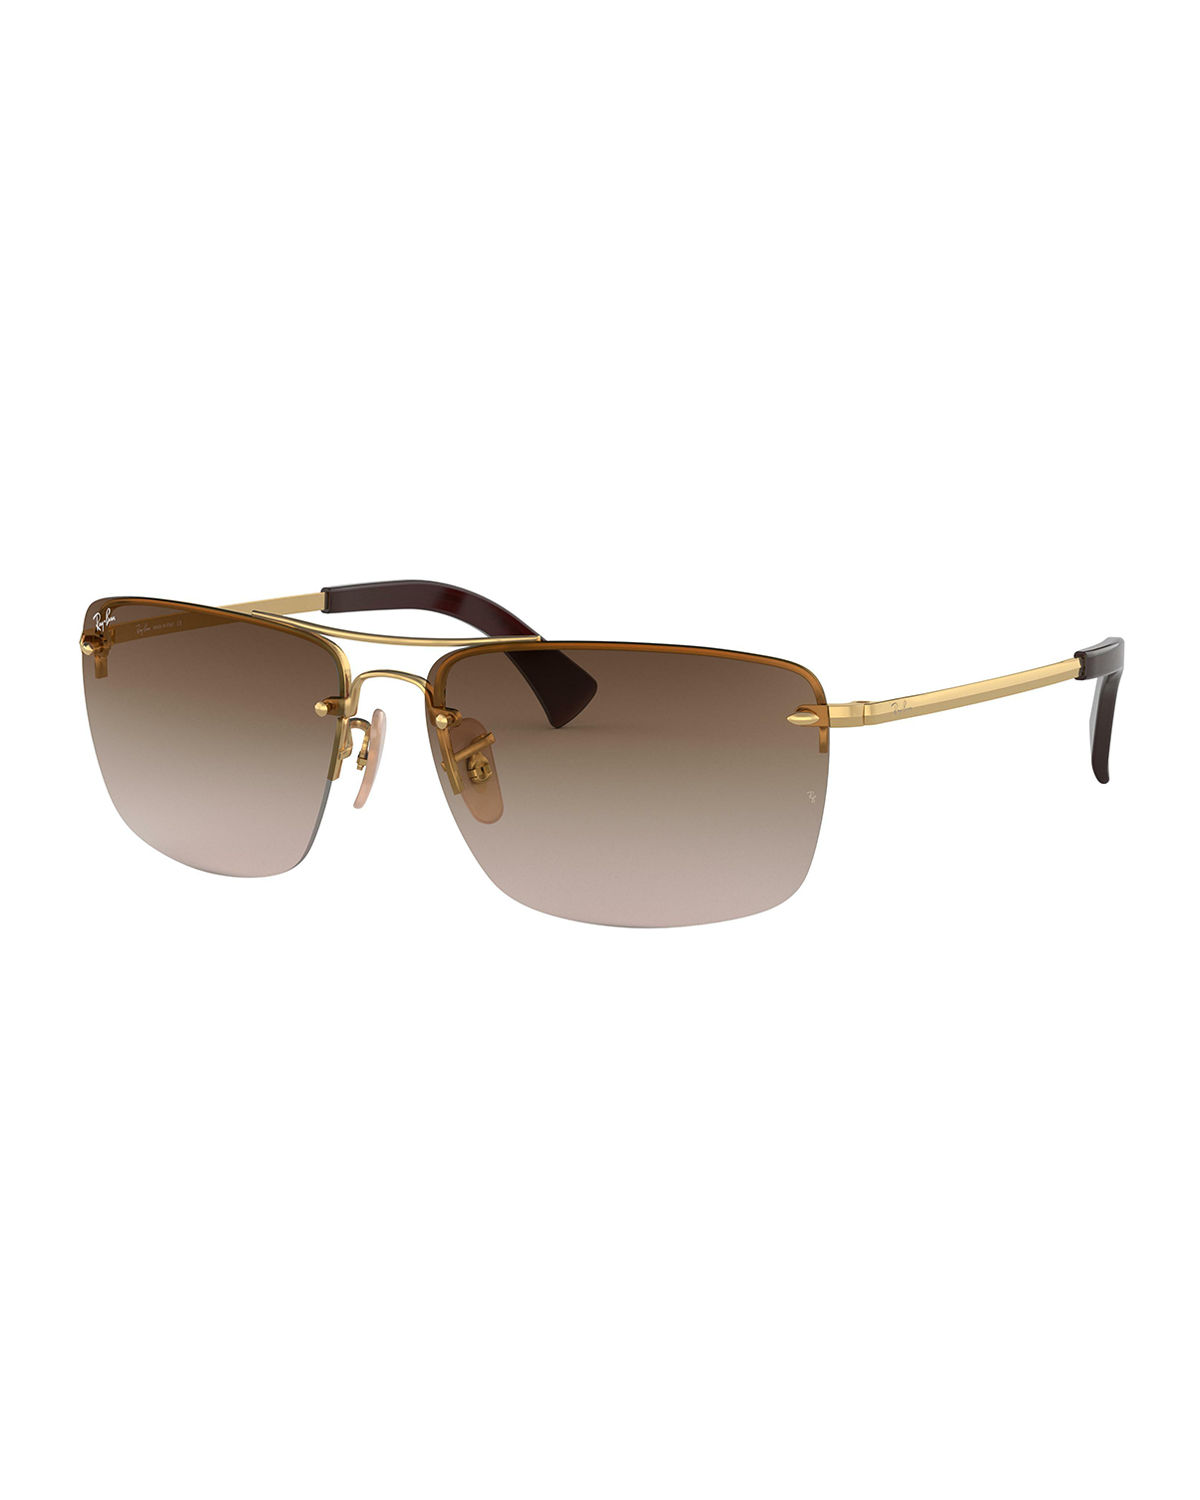 9593ab95de Ray-Ban Men s Half-Rim Metal Sunglasses with Gradient Lenses ...